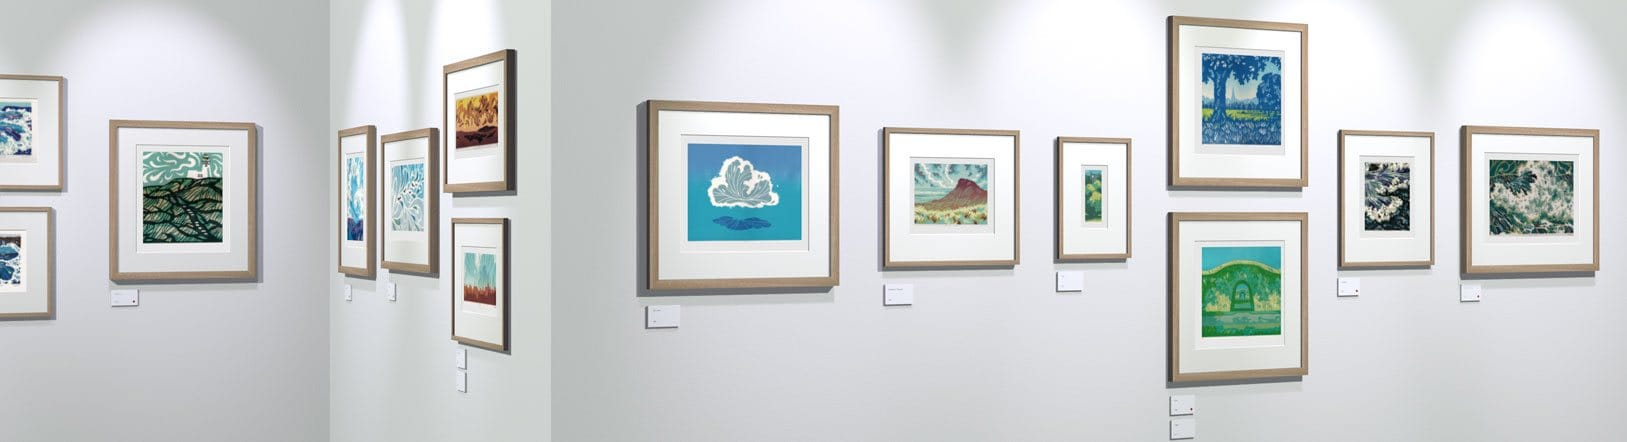 More original linocut prints on show